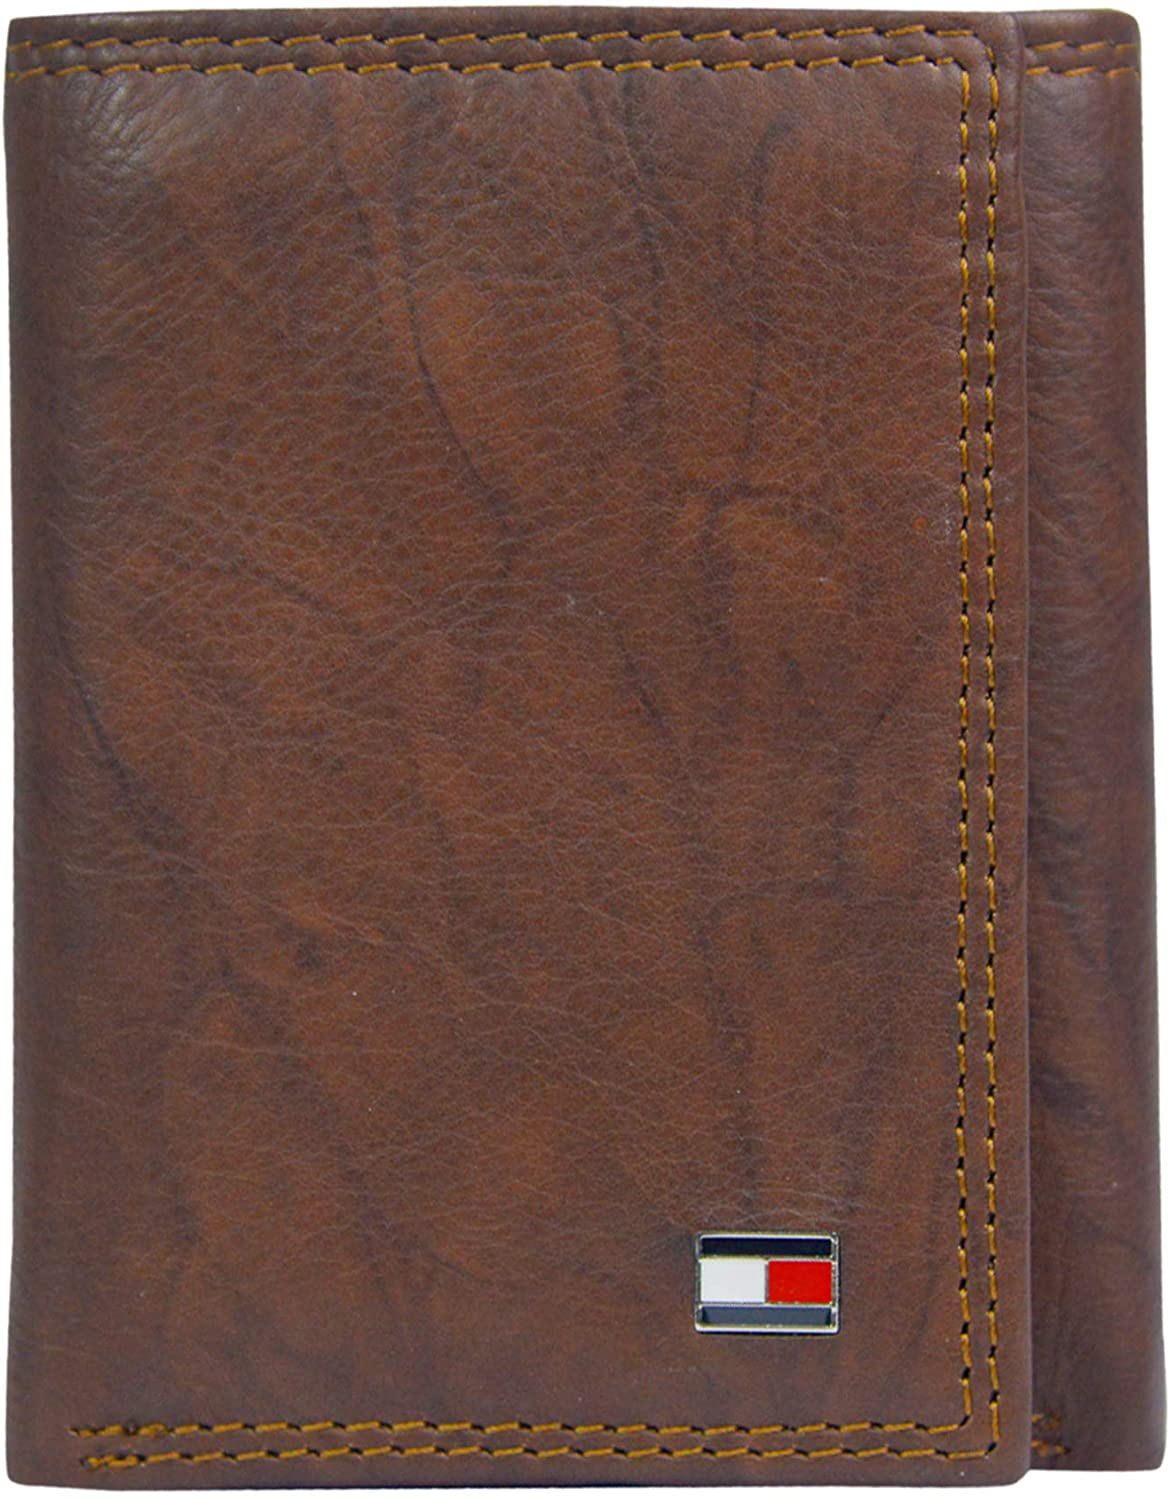 Tommy Hilfiger Men's Trifold Wallet-Sleek and